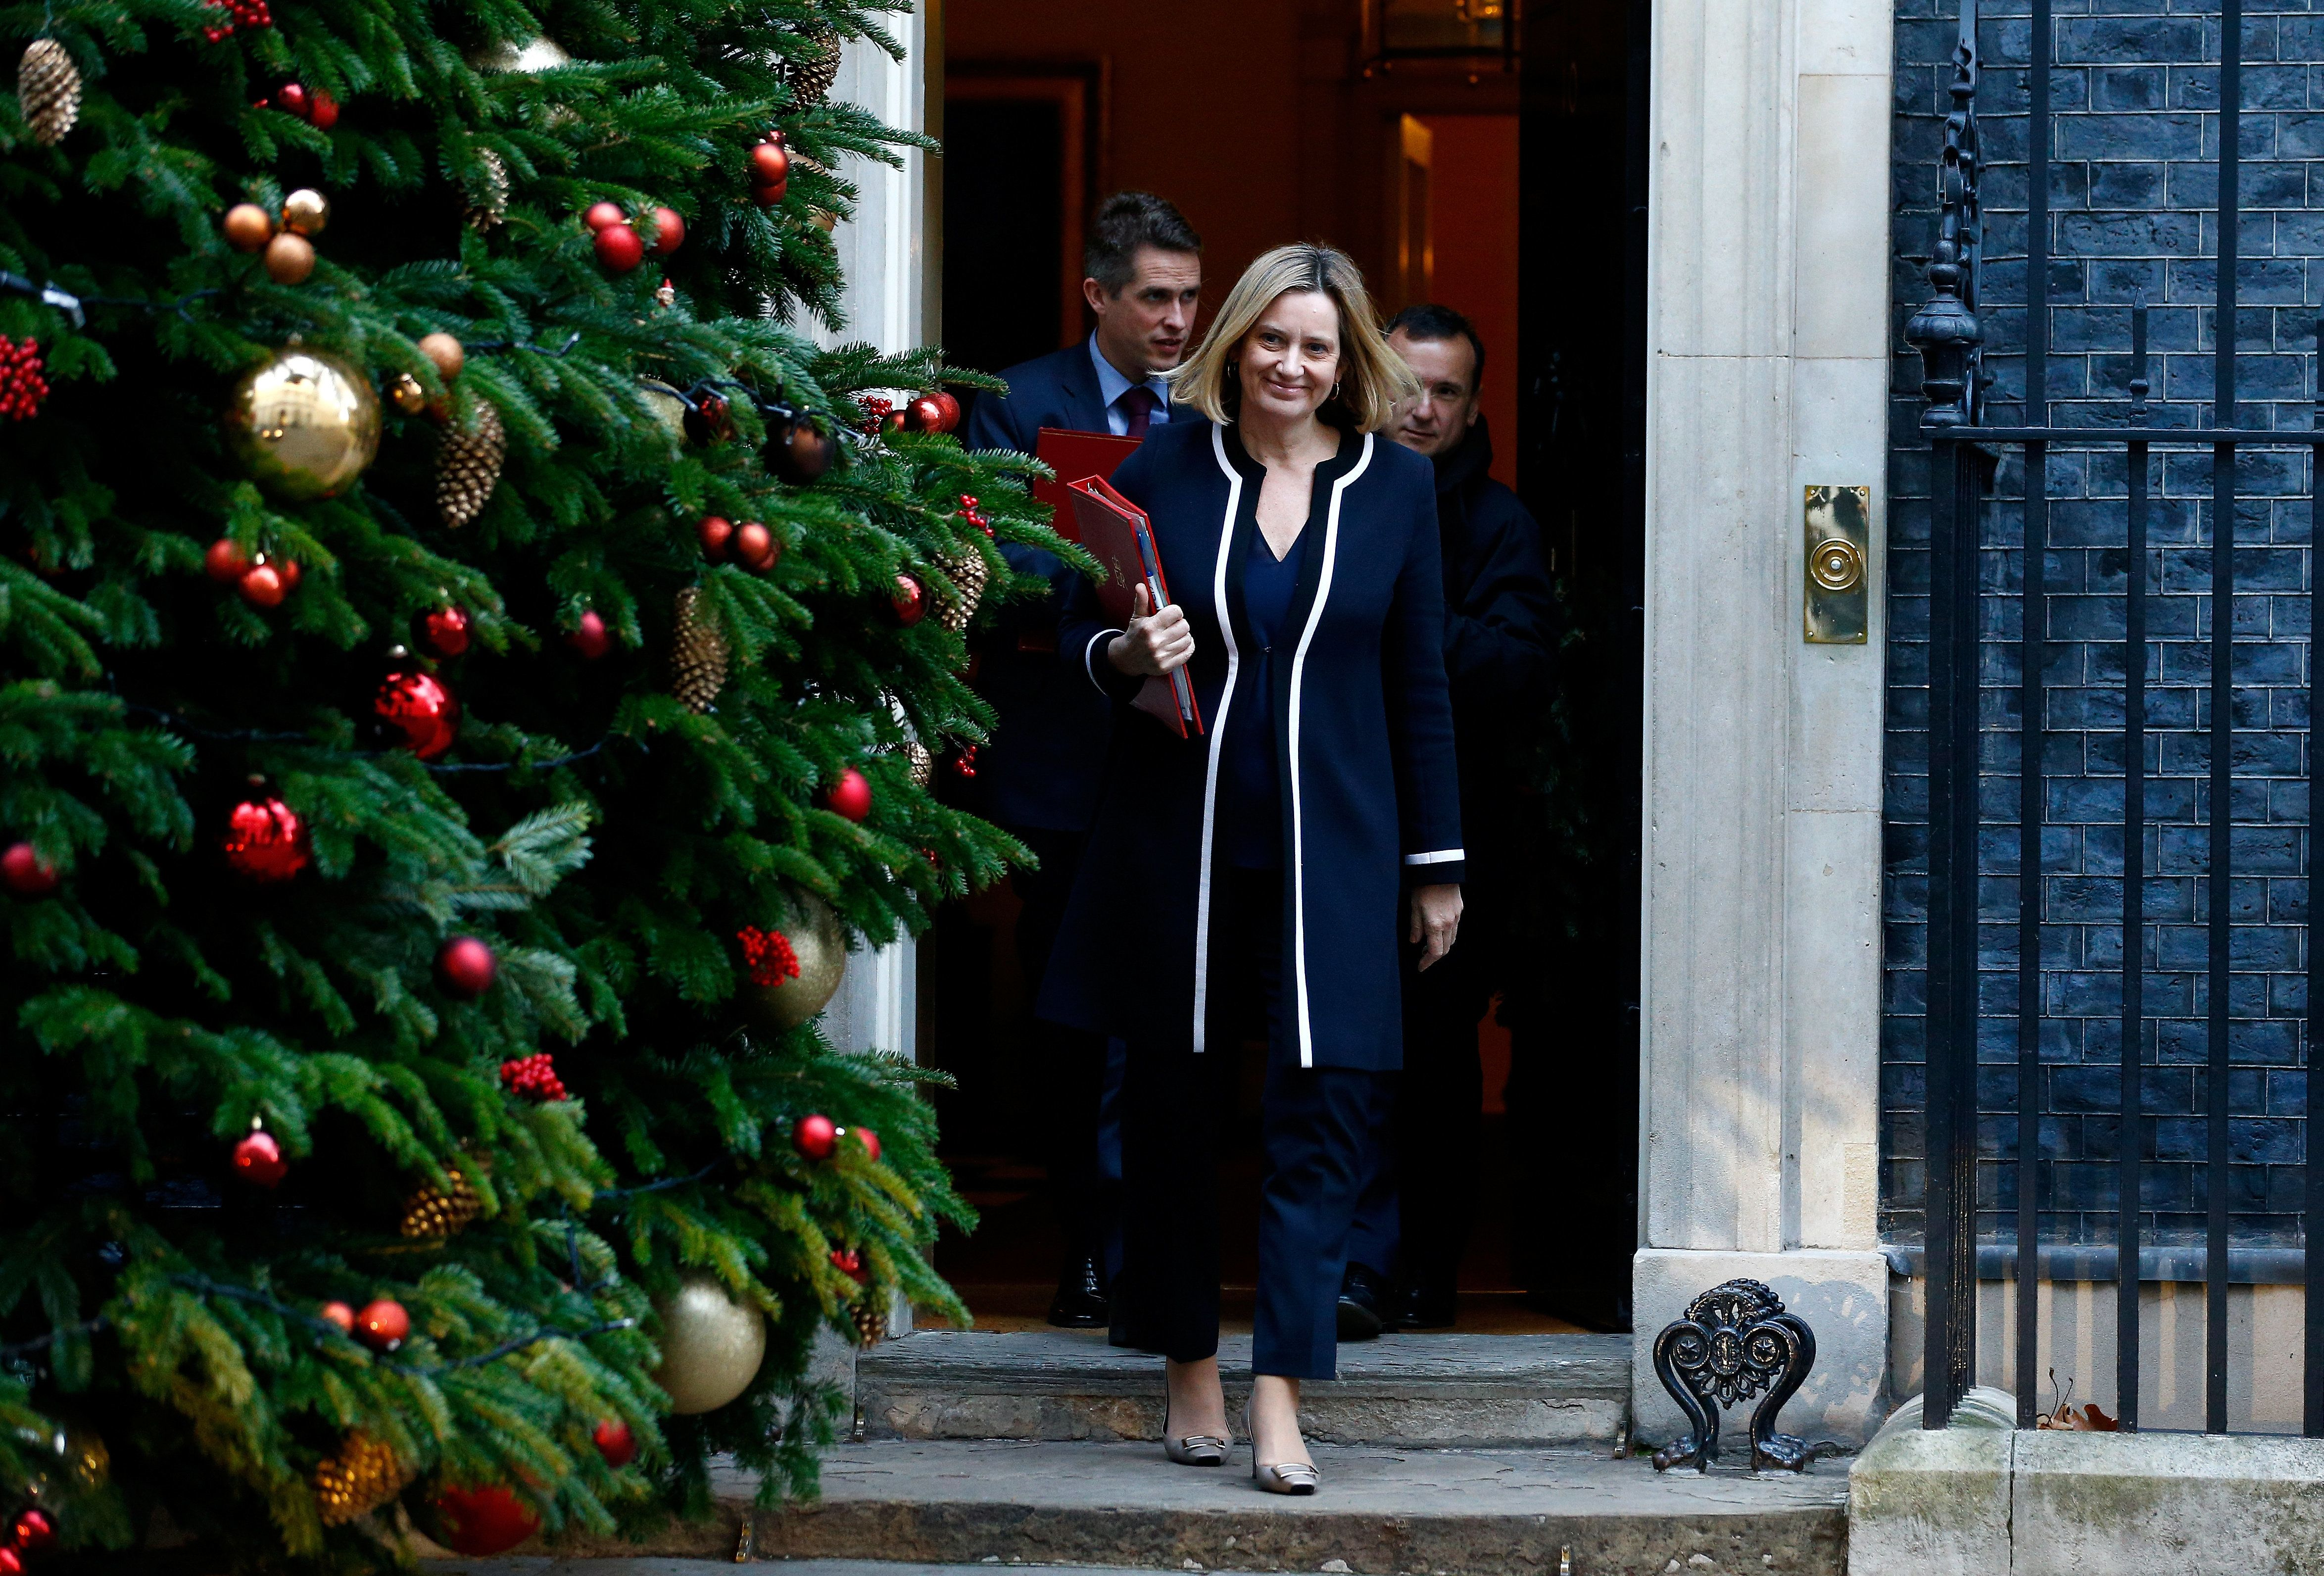 Amber Rudd Becomes First Cabinet Member To Raise 'Plan B' For